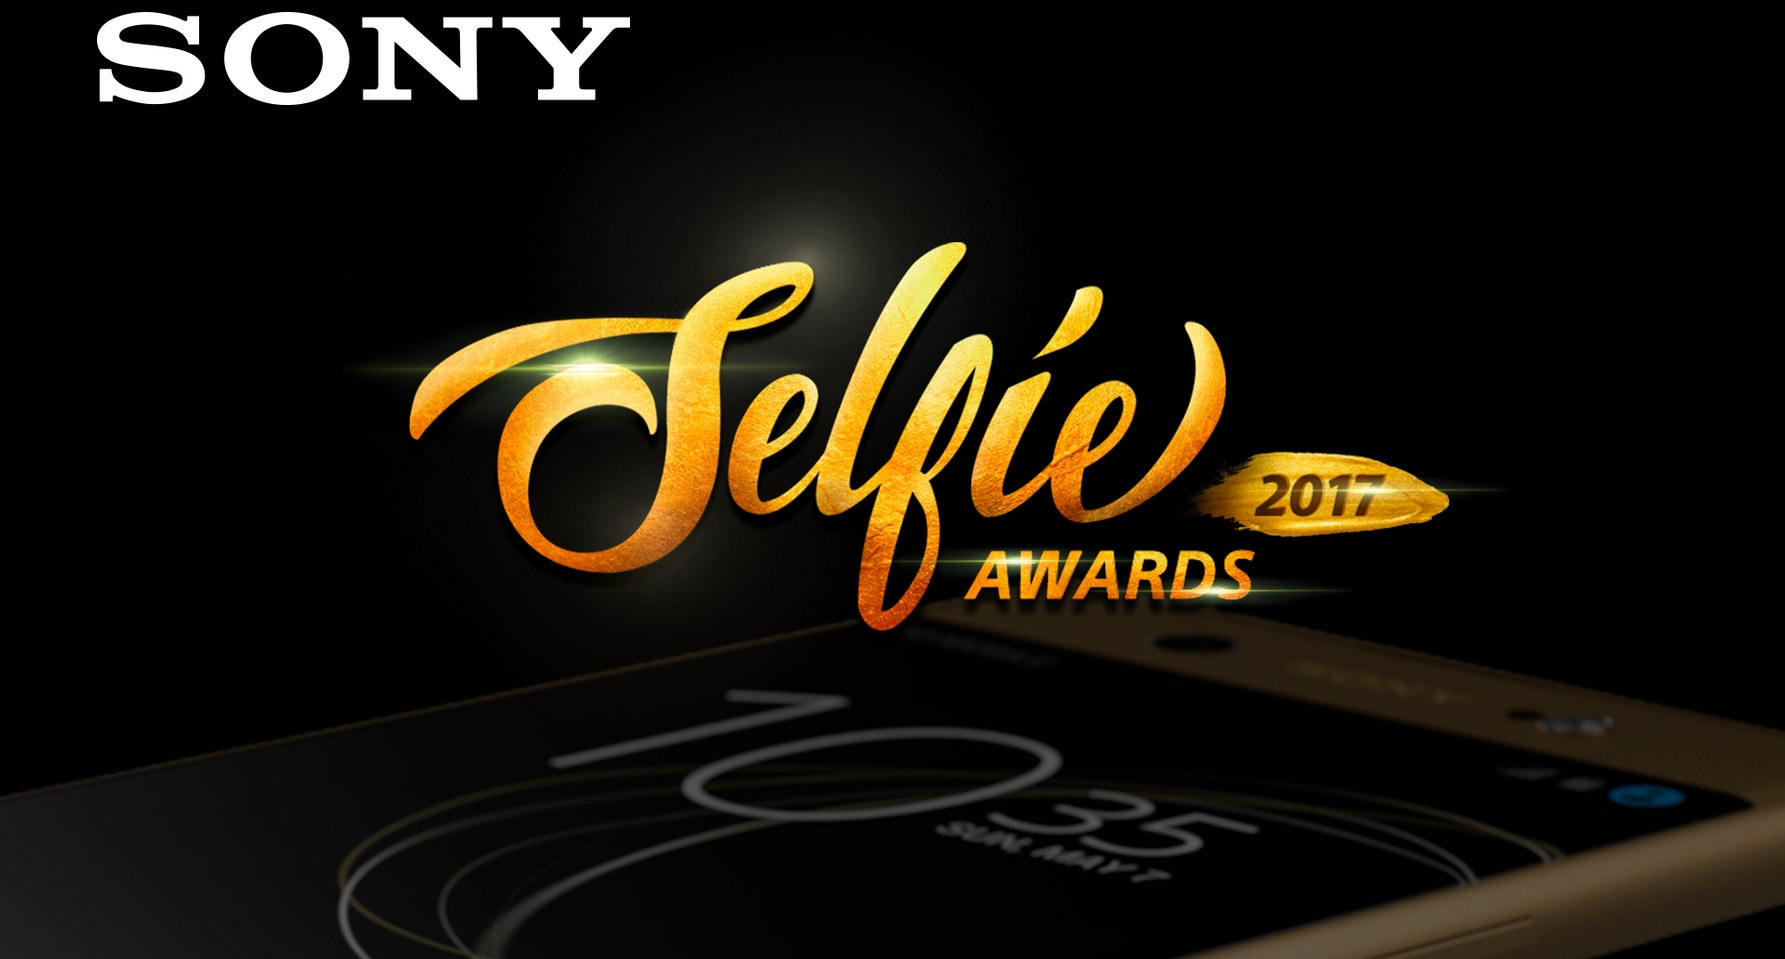 sony selfie awards